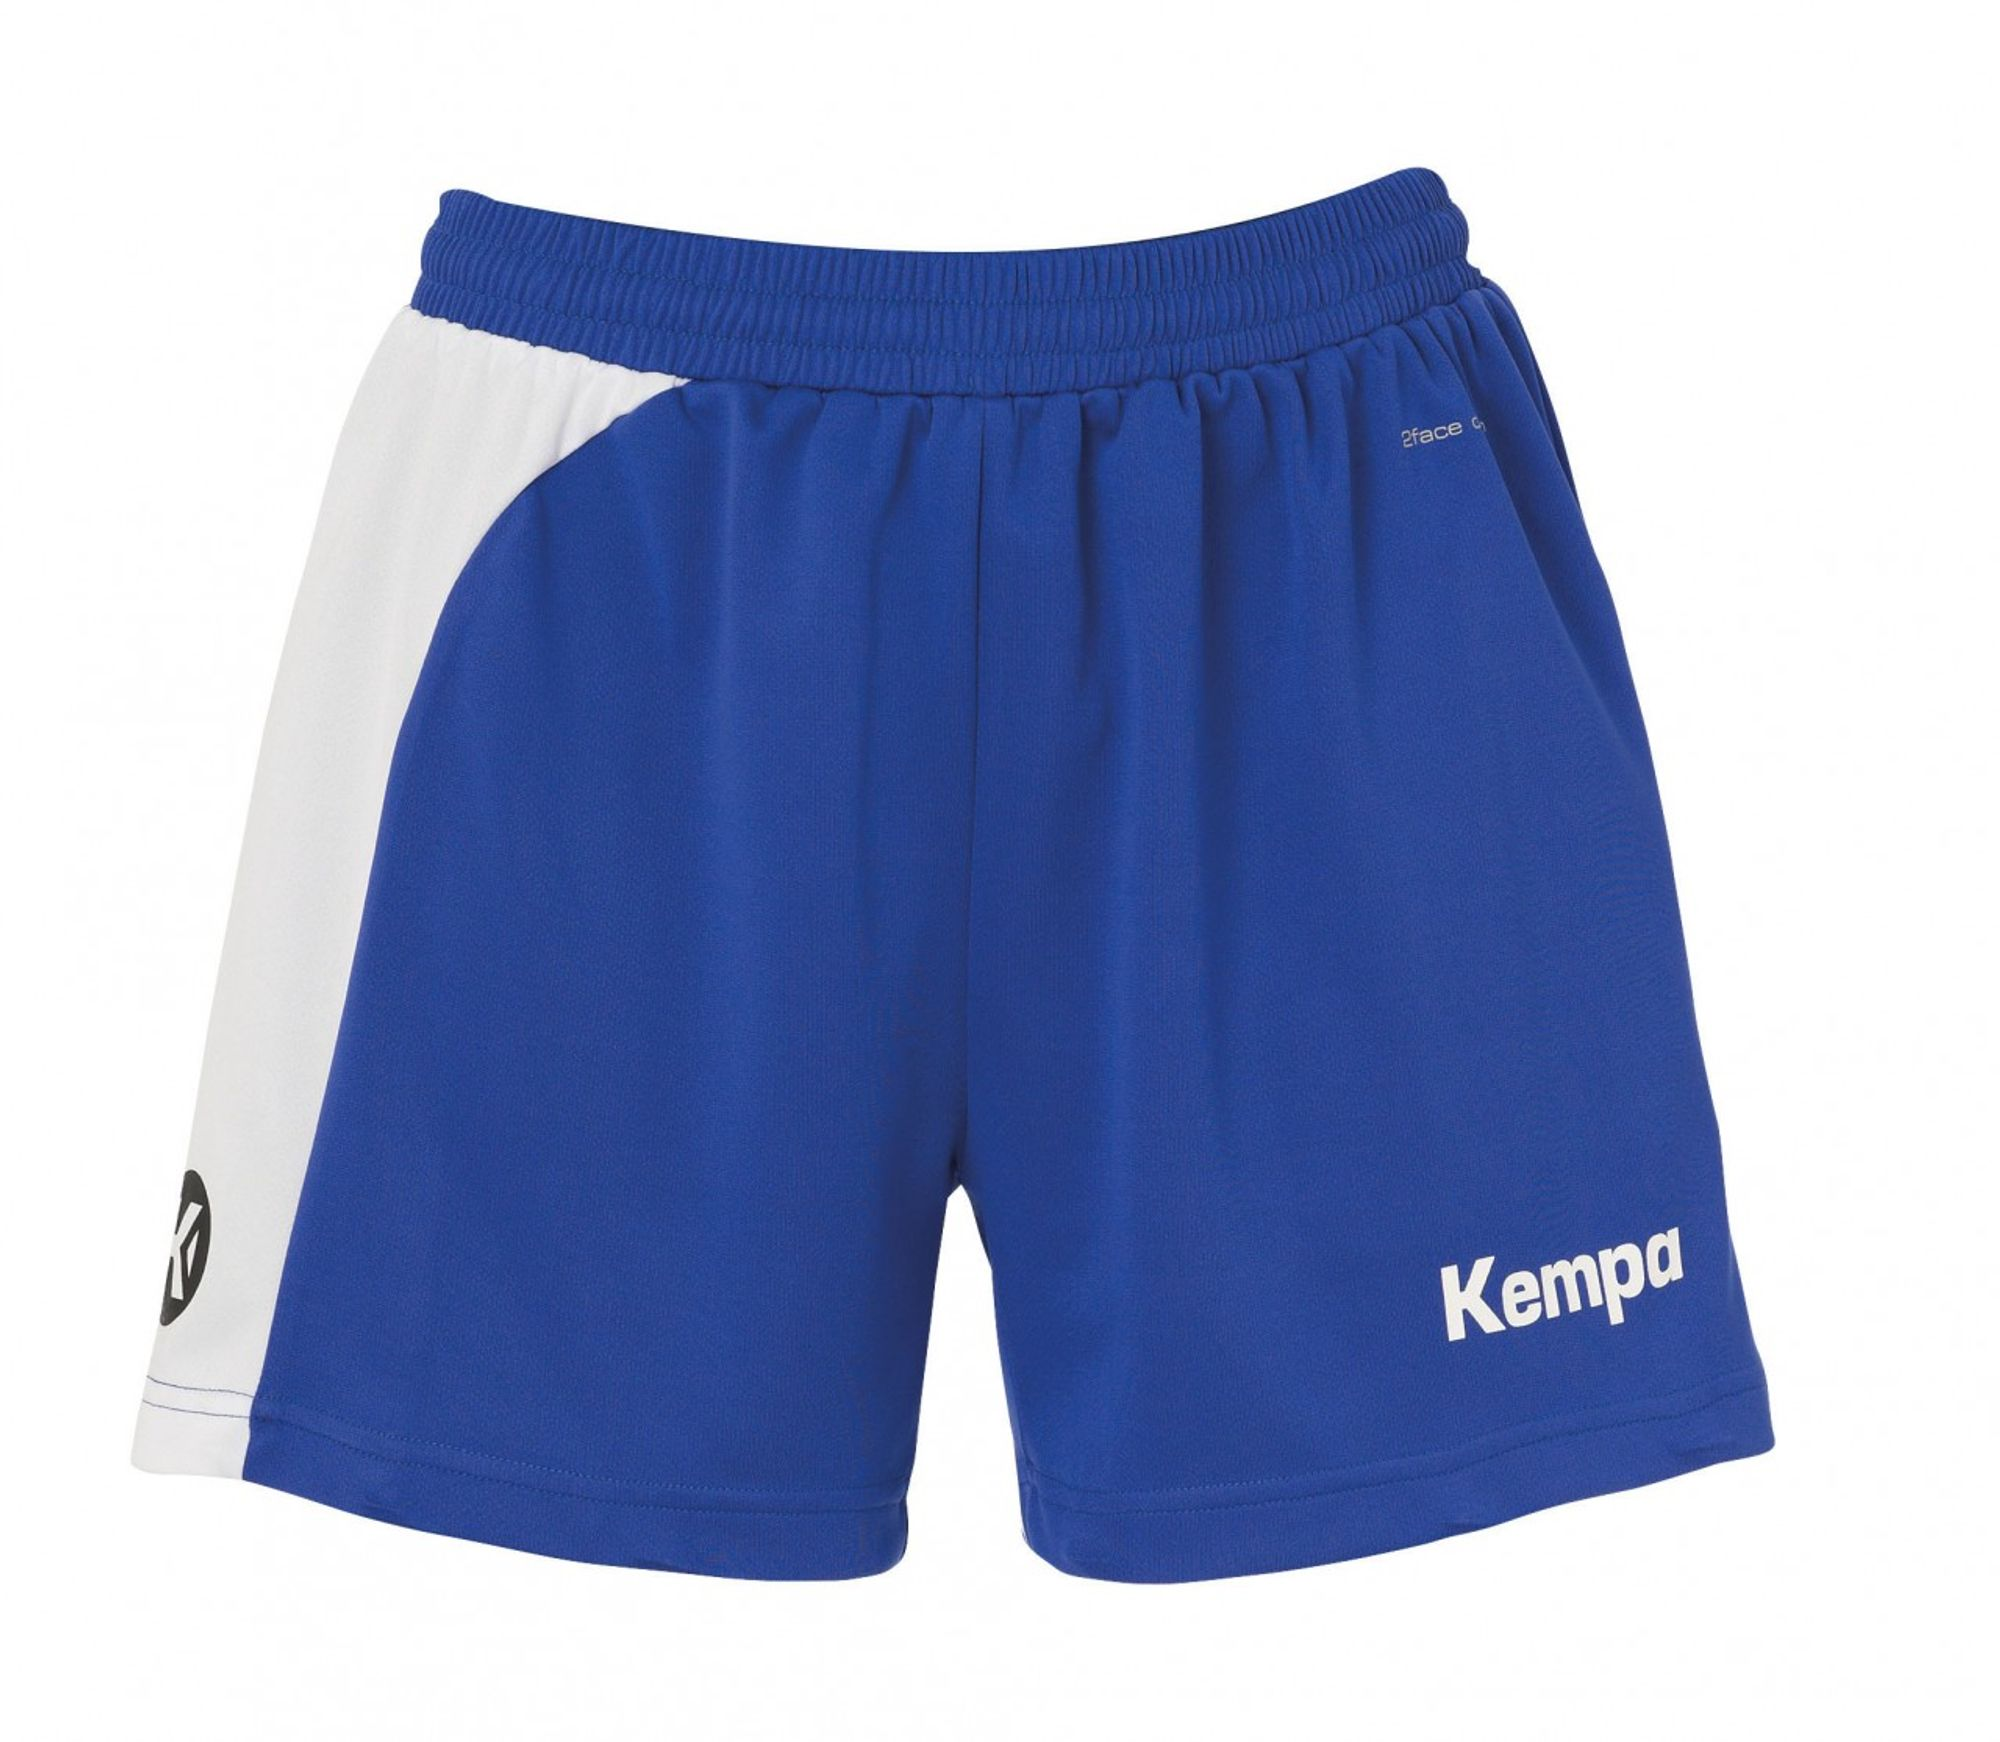 Kempa PEAK SHORTS WOMEN - royal/weiß